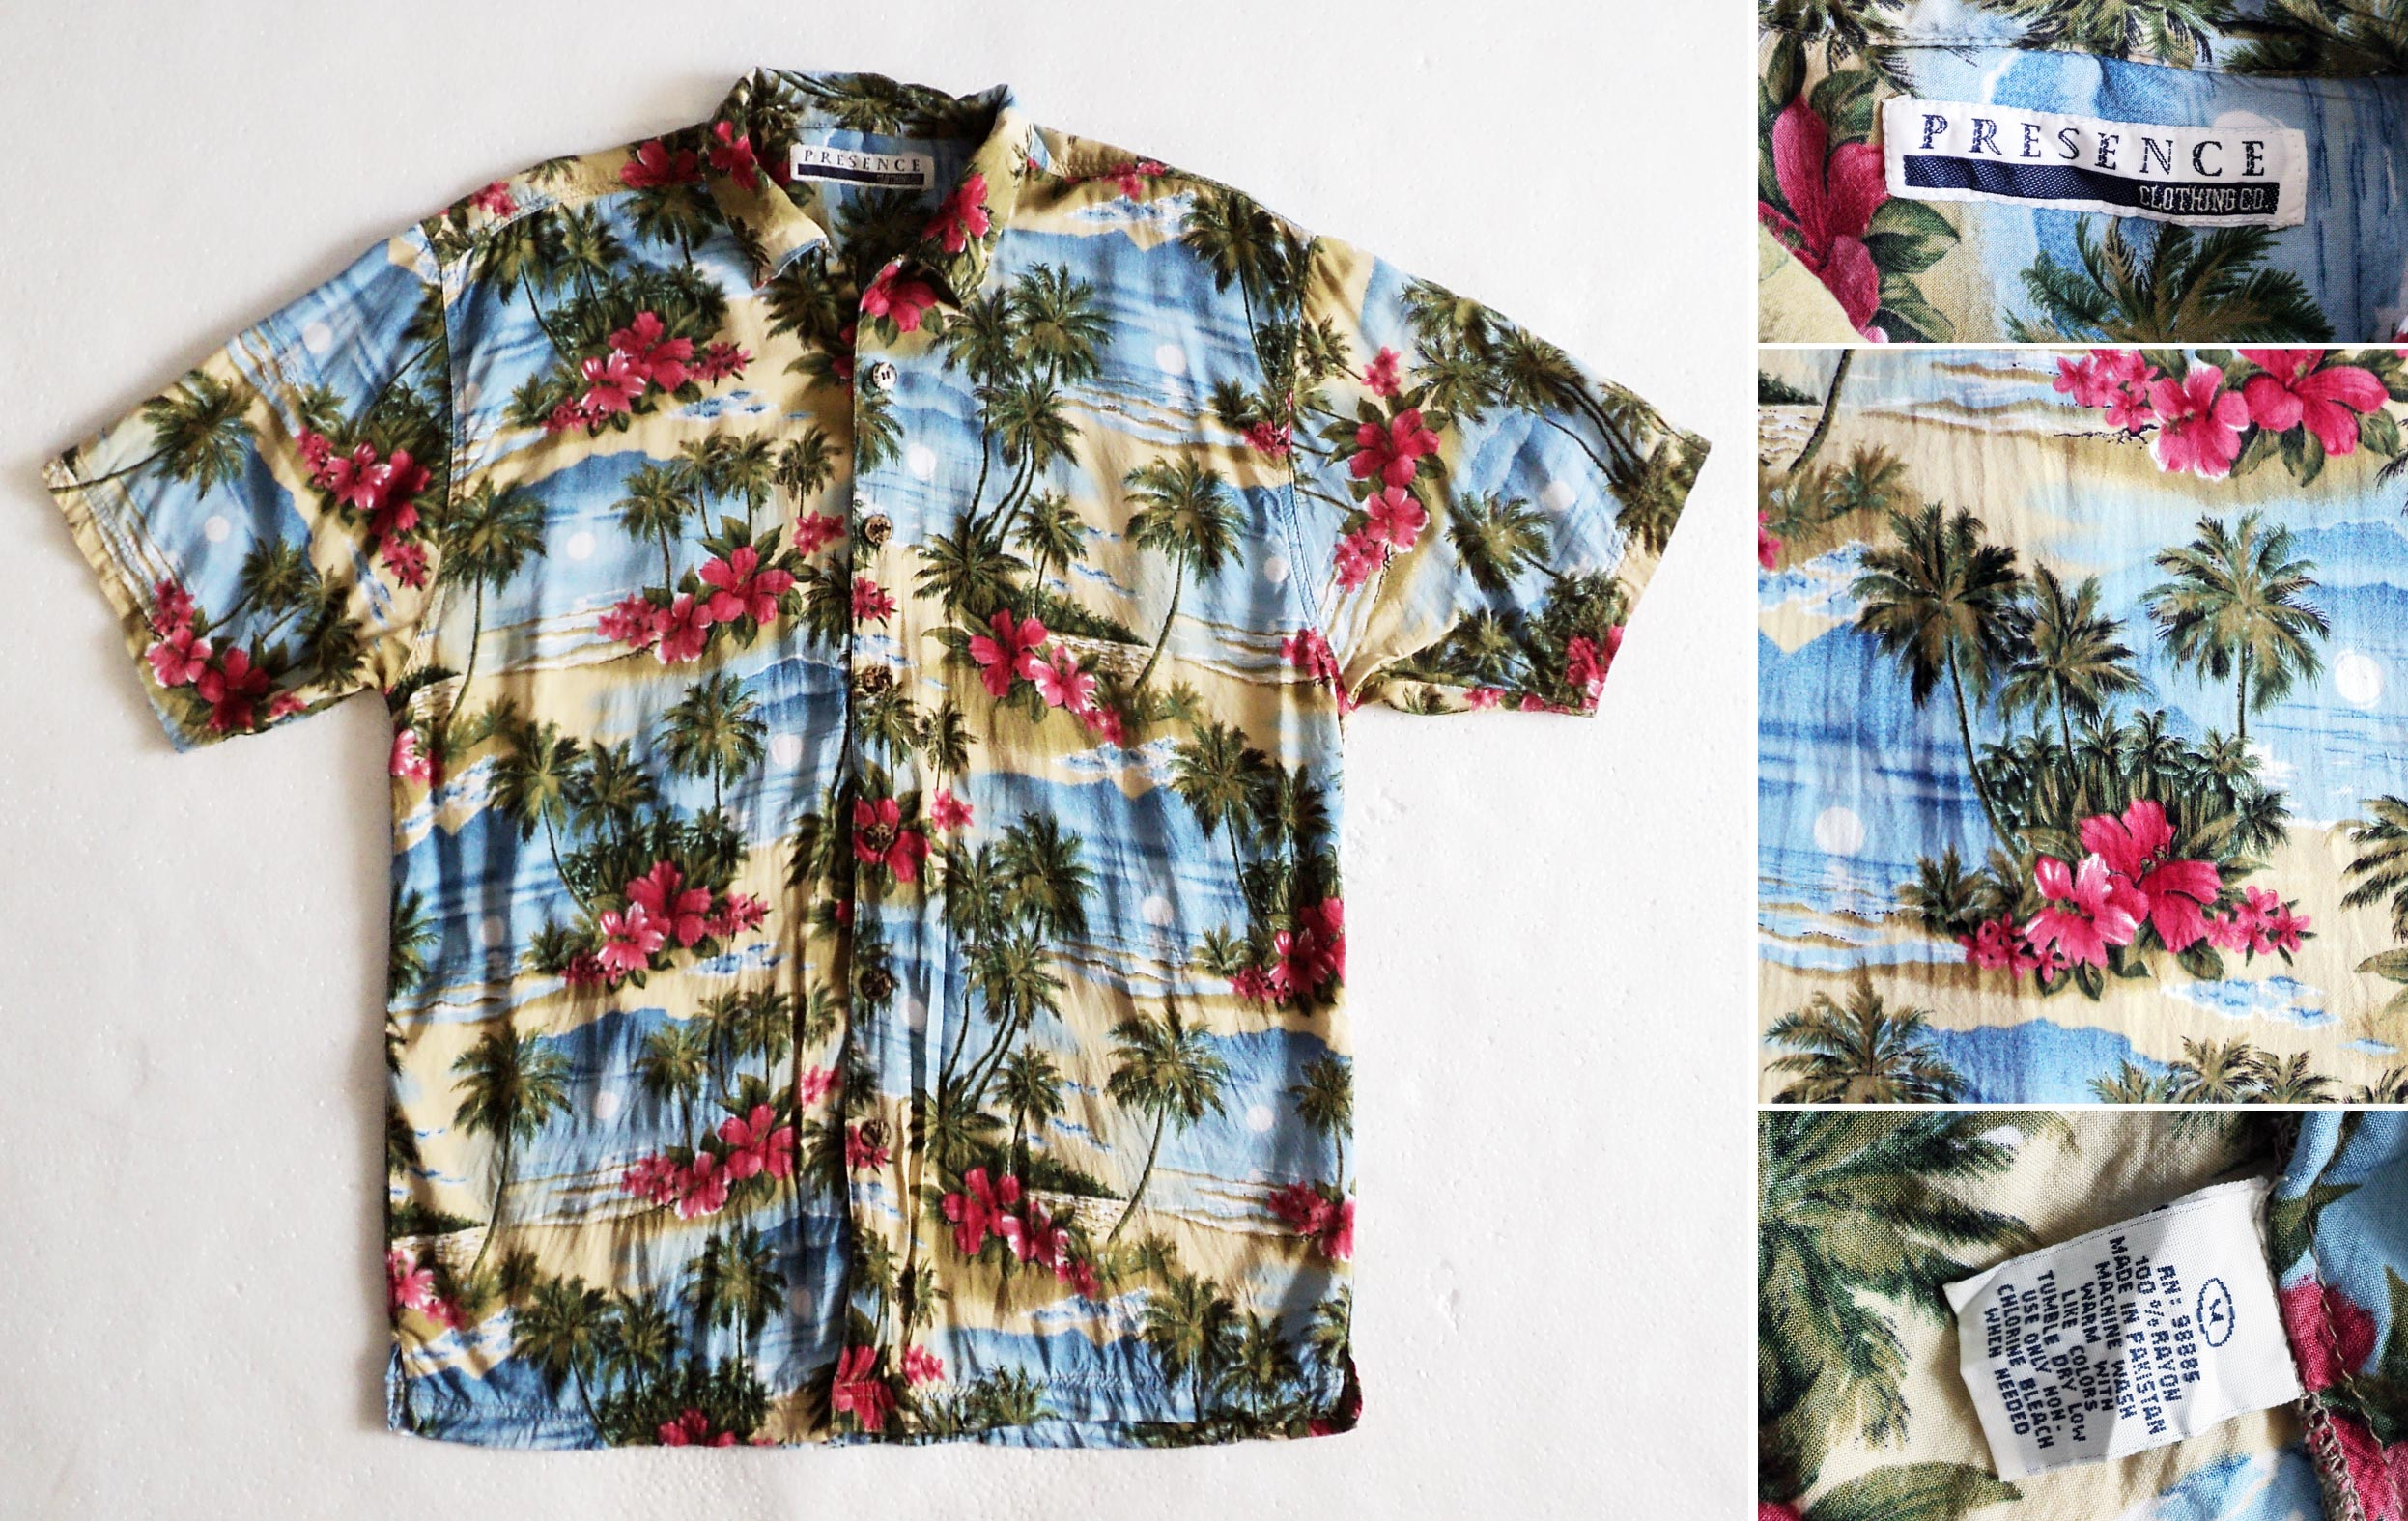 Hawaii, PRESENCE-Clothing-co., 3, m, kzyshop